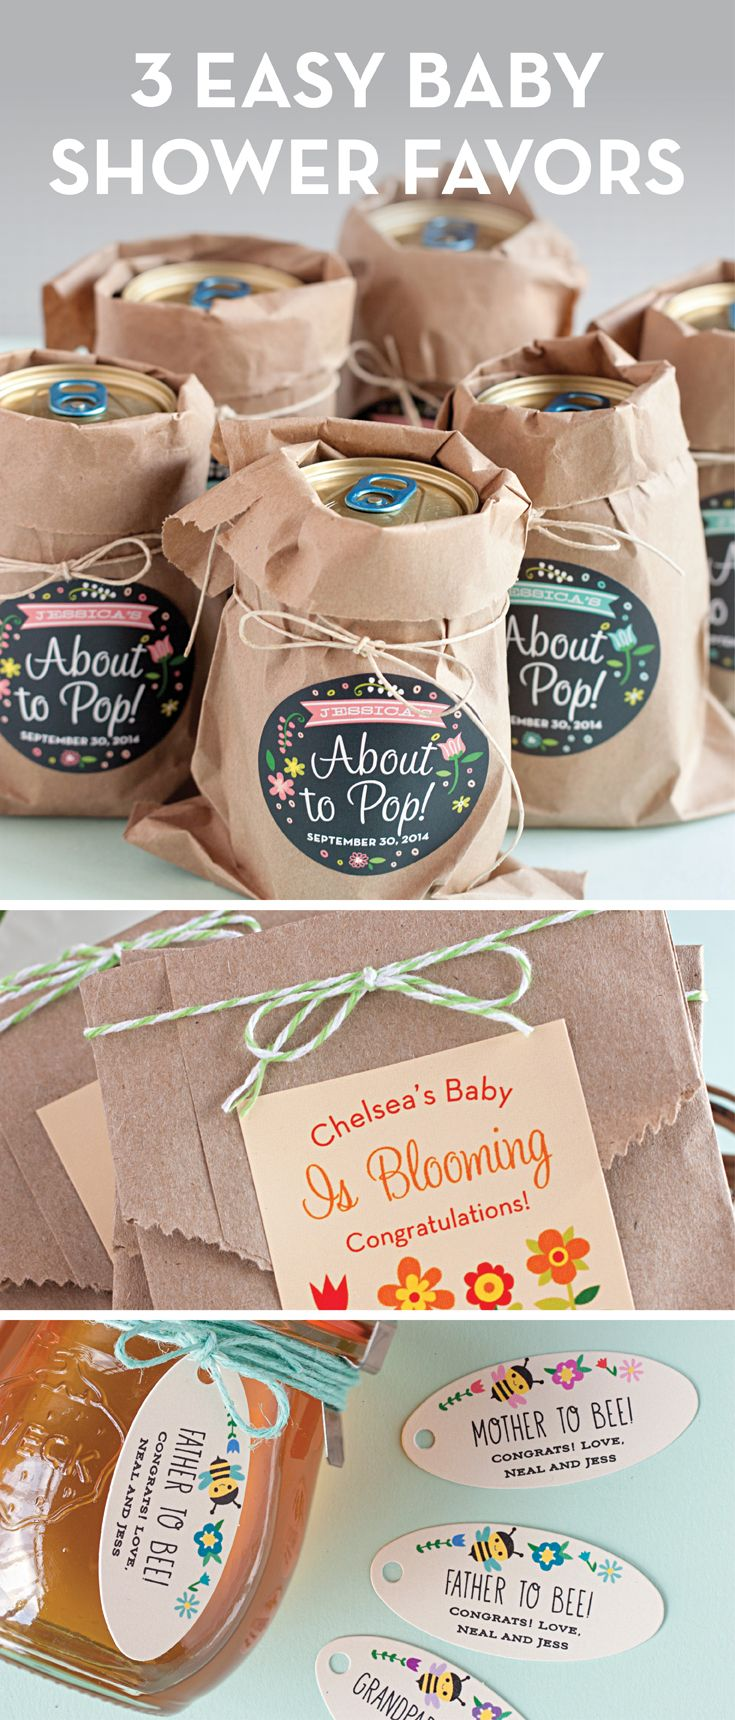 3 Easy Baby Shower Favor Ideas from the Evermine Blog. www.Evermine.com #Baby #BabyShower #Favors #DIY